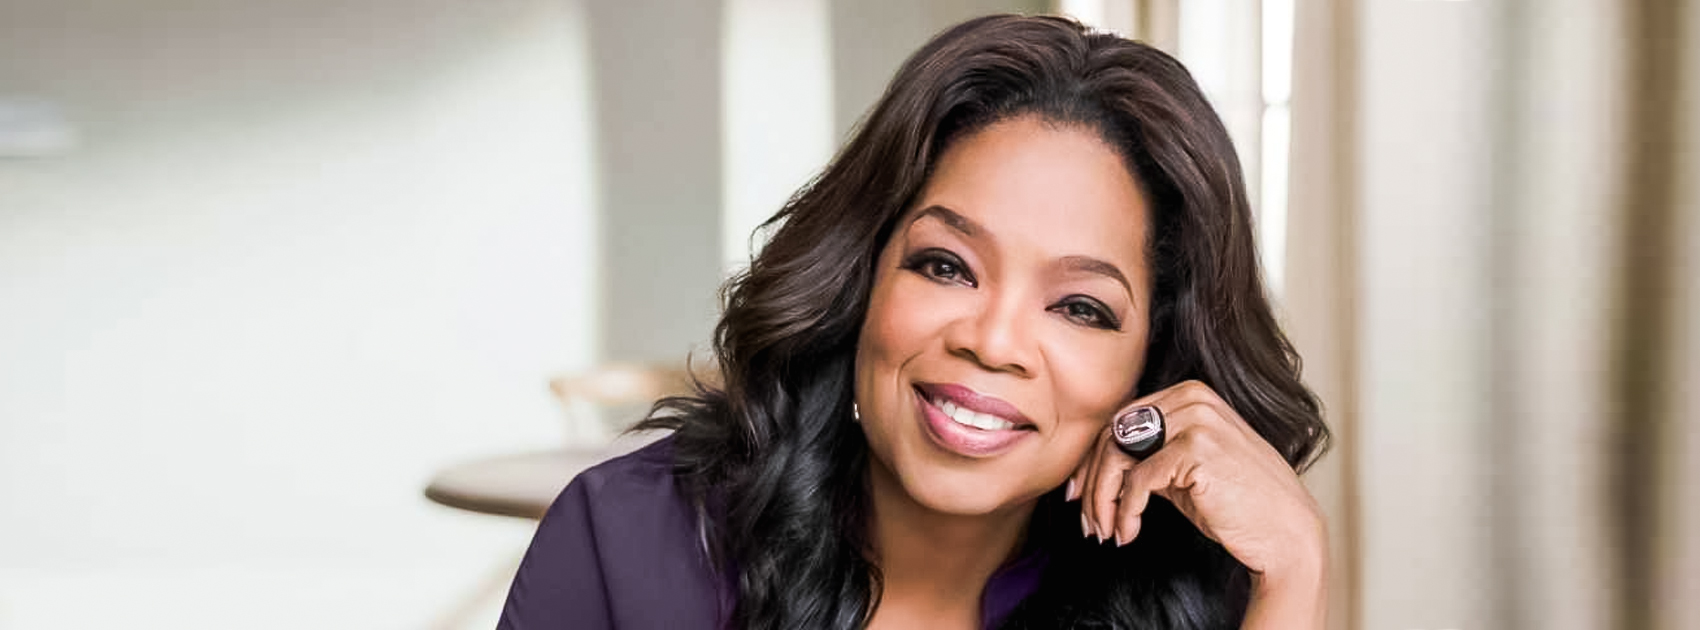 Oprah Winfrey: Inspiring Life Lessons,Startup Stories,5 Life Lessons Every Woman Can Learn From Oprah Winfrey,Learn From The Best Inspiring Words From Oprah Winfrey,5 Lessons From Oprah on Living a More Meaningful Life,10 Inspiring Lessons From Oprah Winfrey That Are More Important,Lessons Learned from Oprah Winfrey